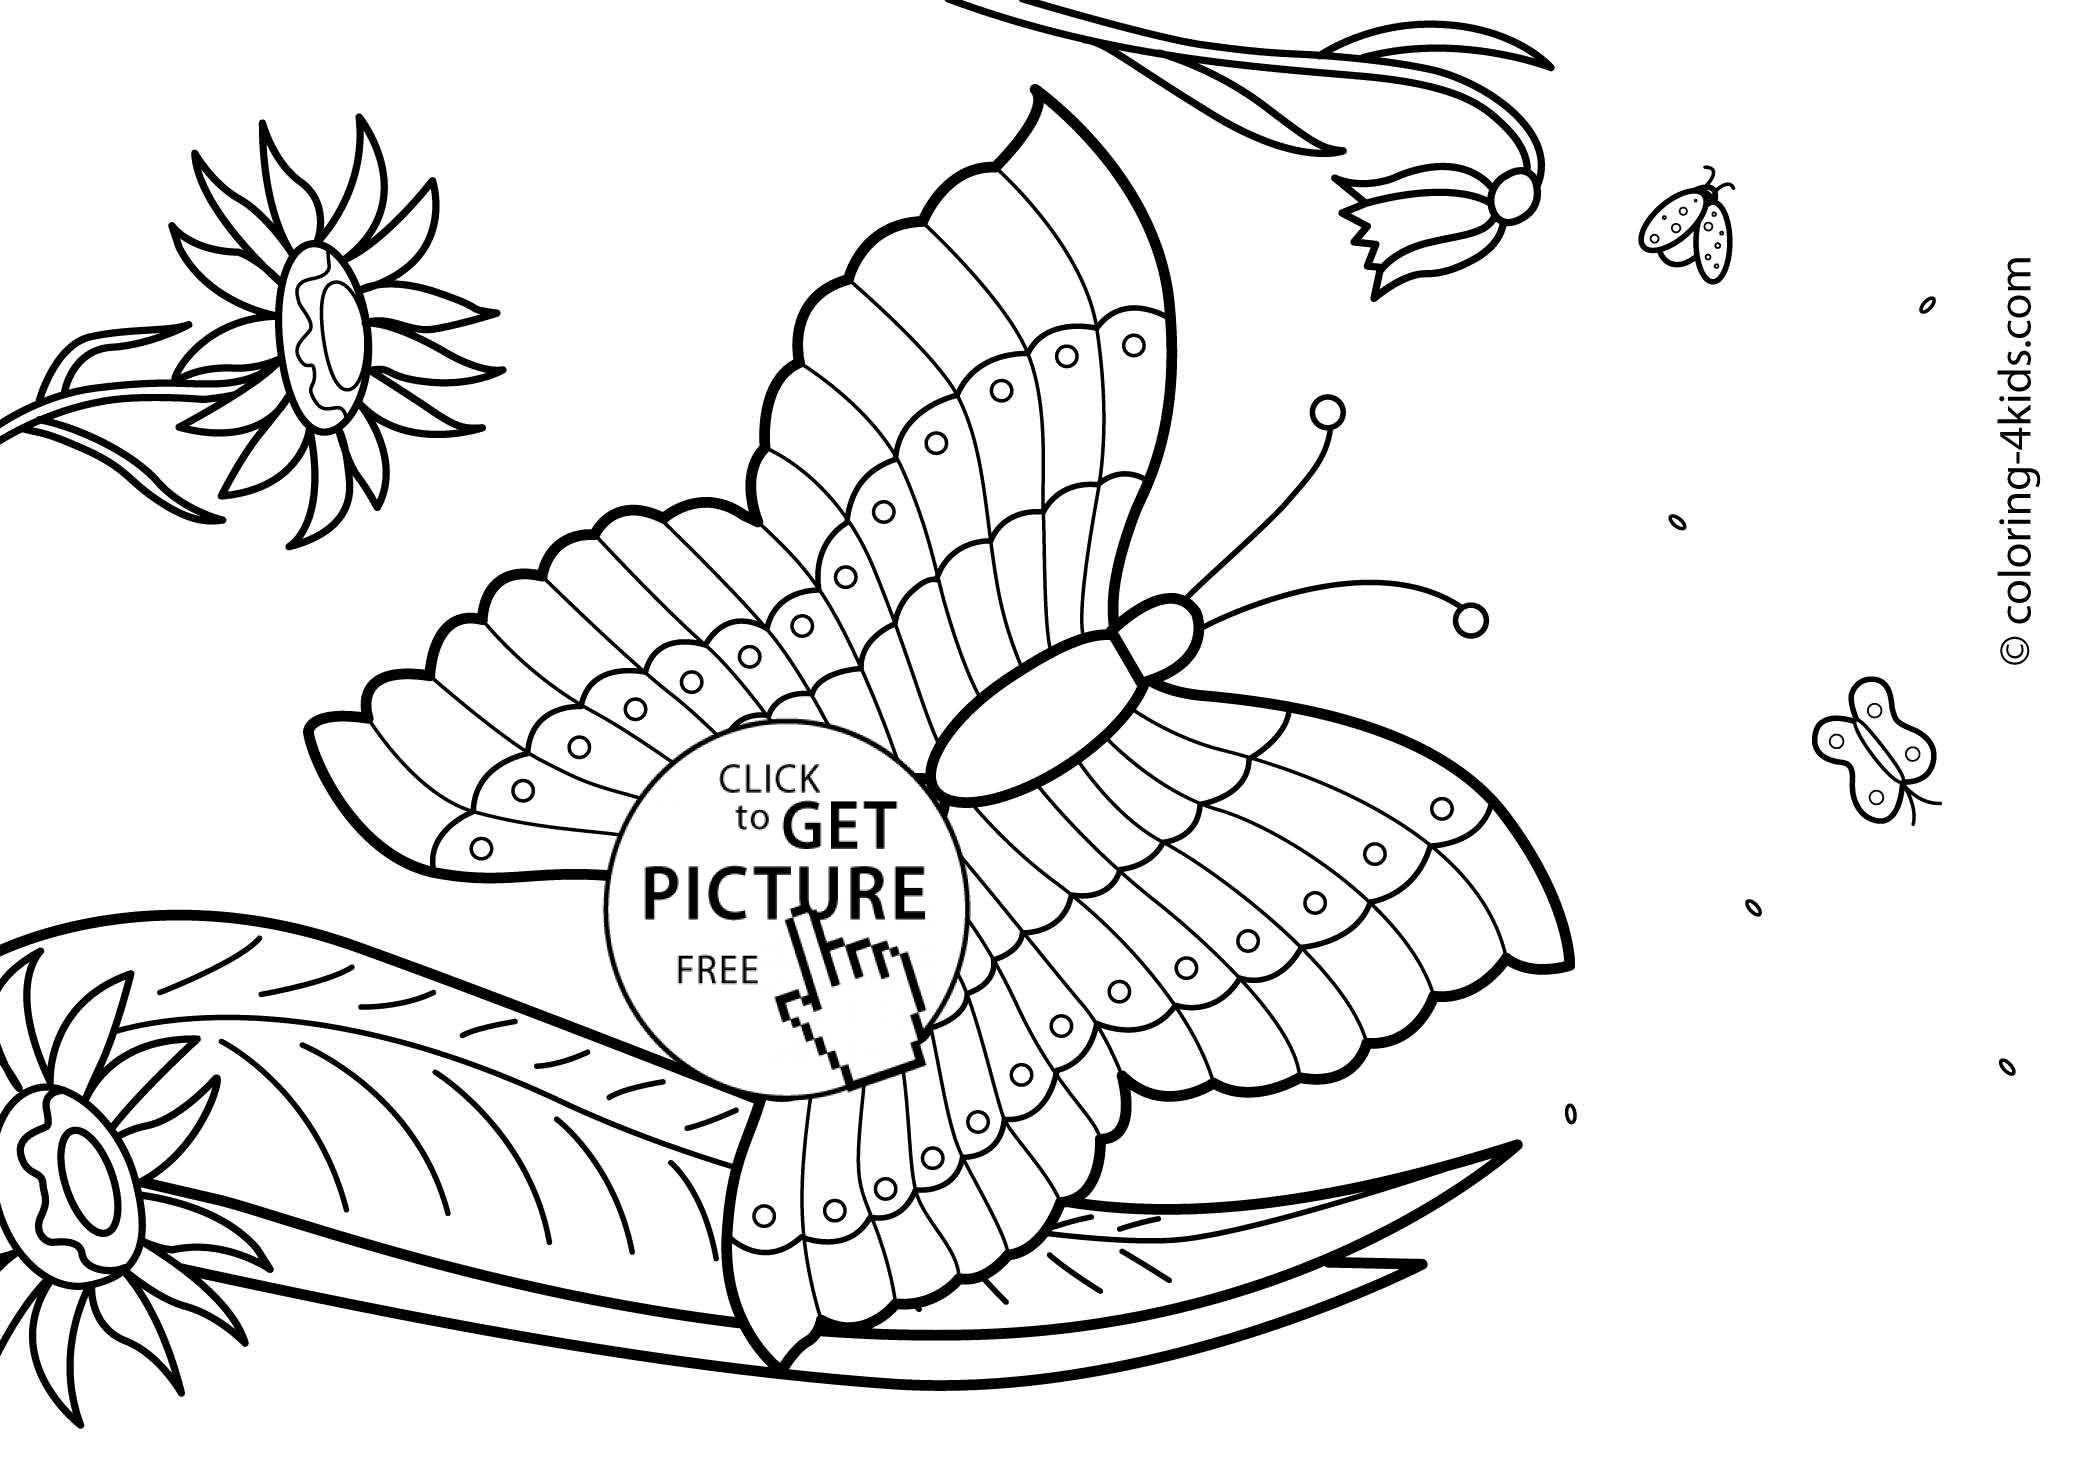 Butterfly Summer coloring pages for kids, free, printable ...